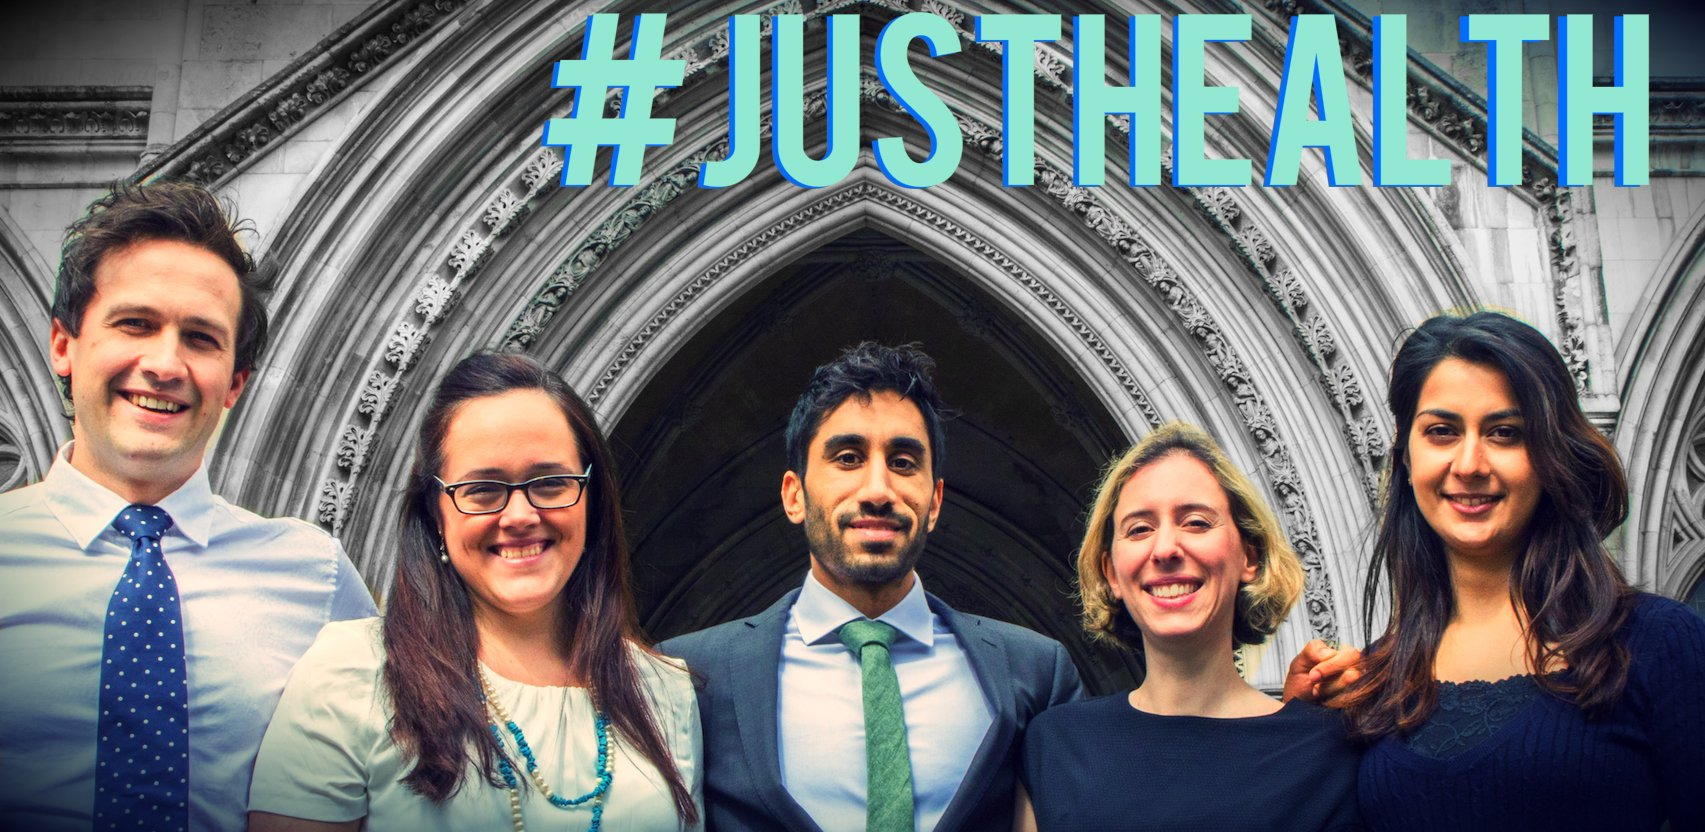 RT @ProtocoIDriven: 5 junior drs crowd funding for a legal review into the contract & NHS. Pls RT. https://t.co/1KM0XiqdSu #justhealth http…